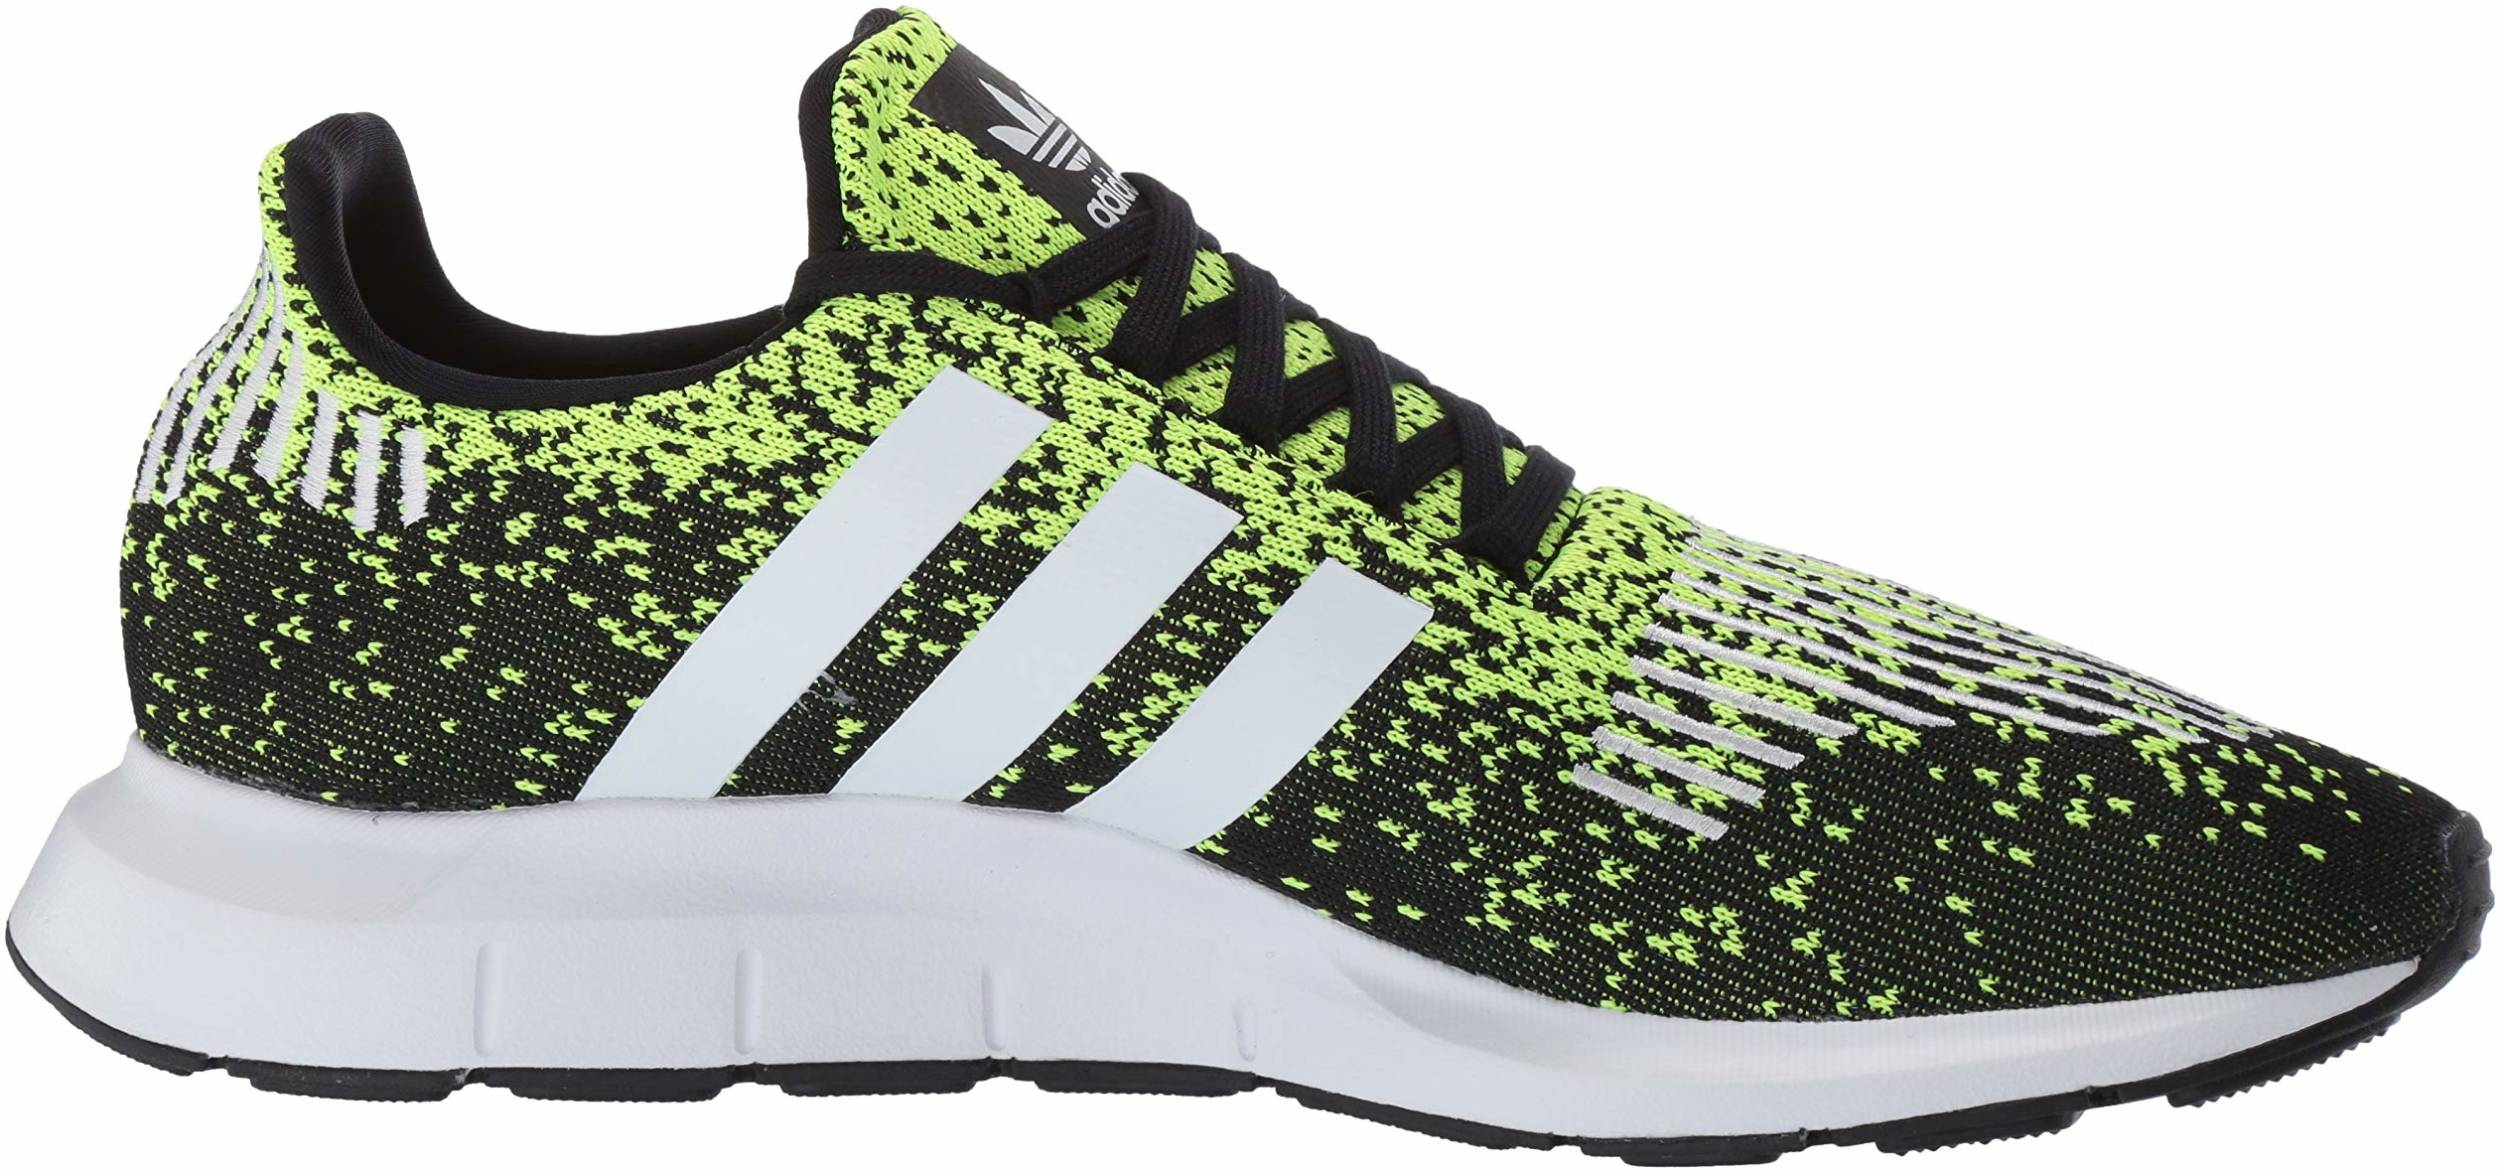 Save 65% on Adidas Sneakers (631 Models